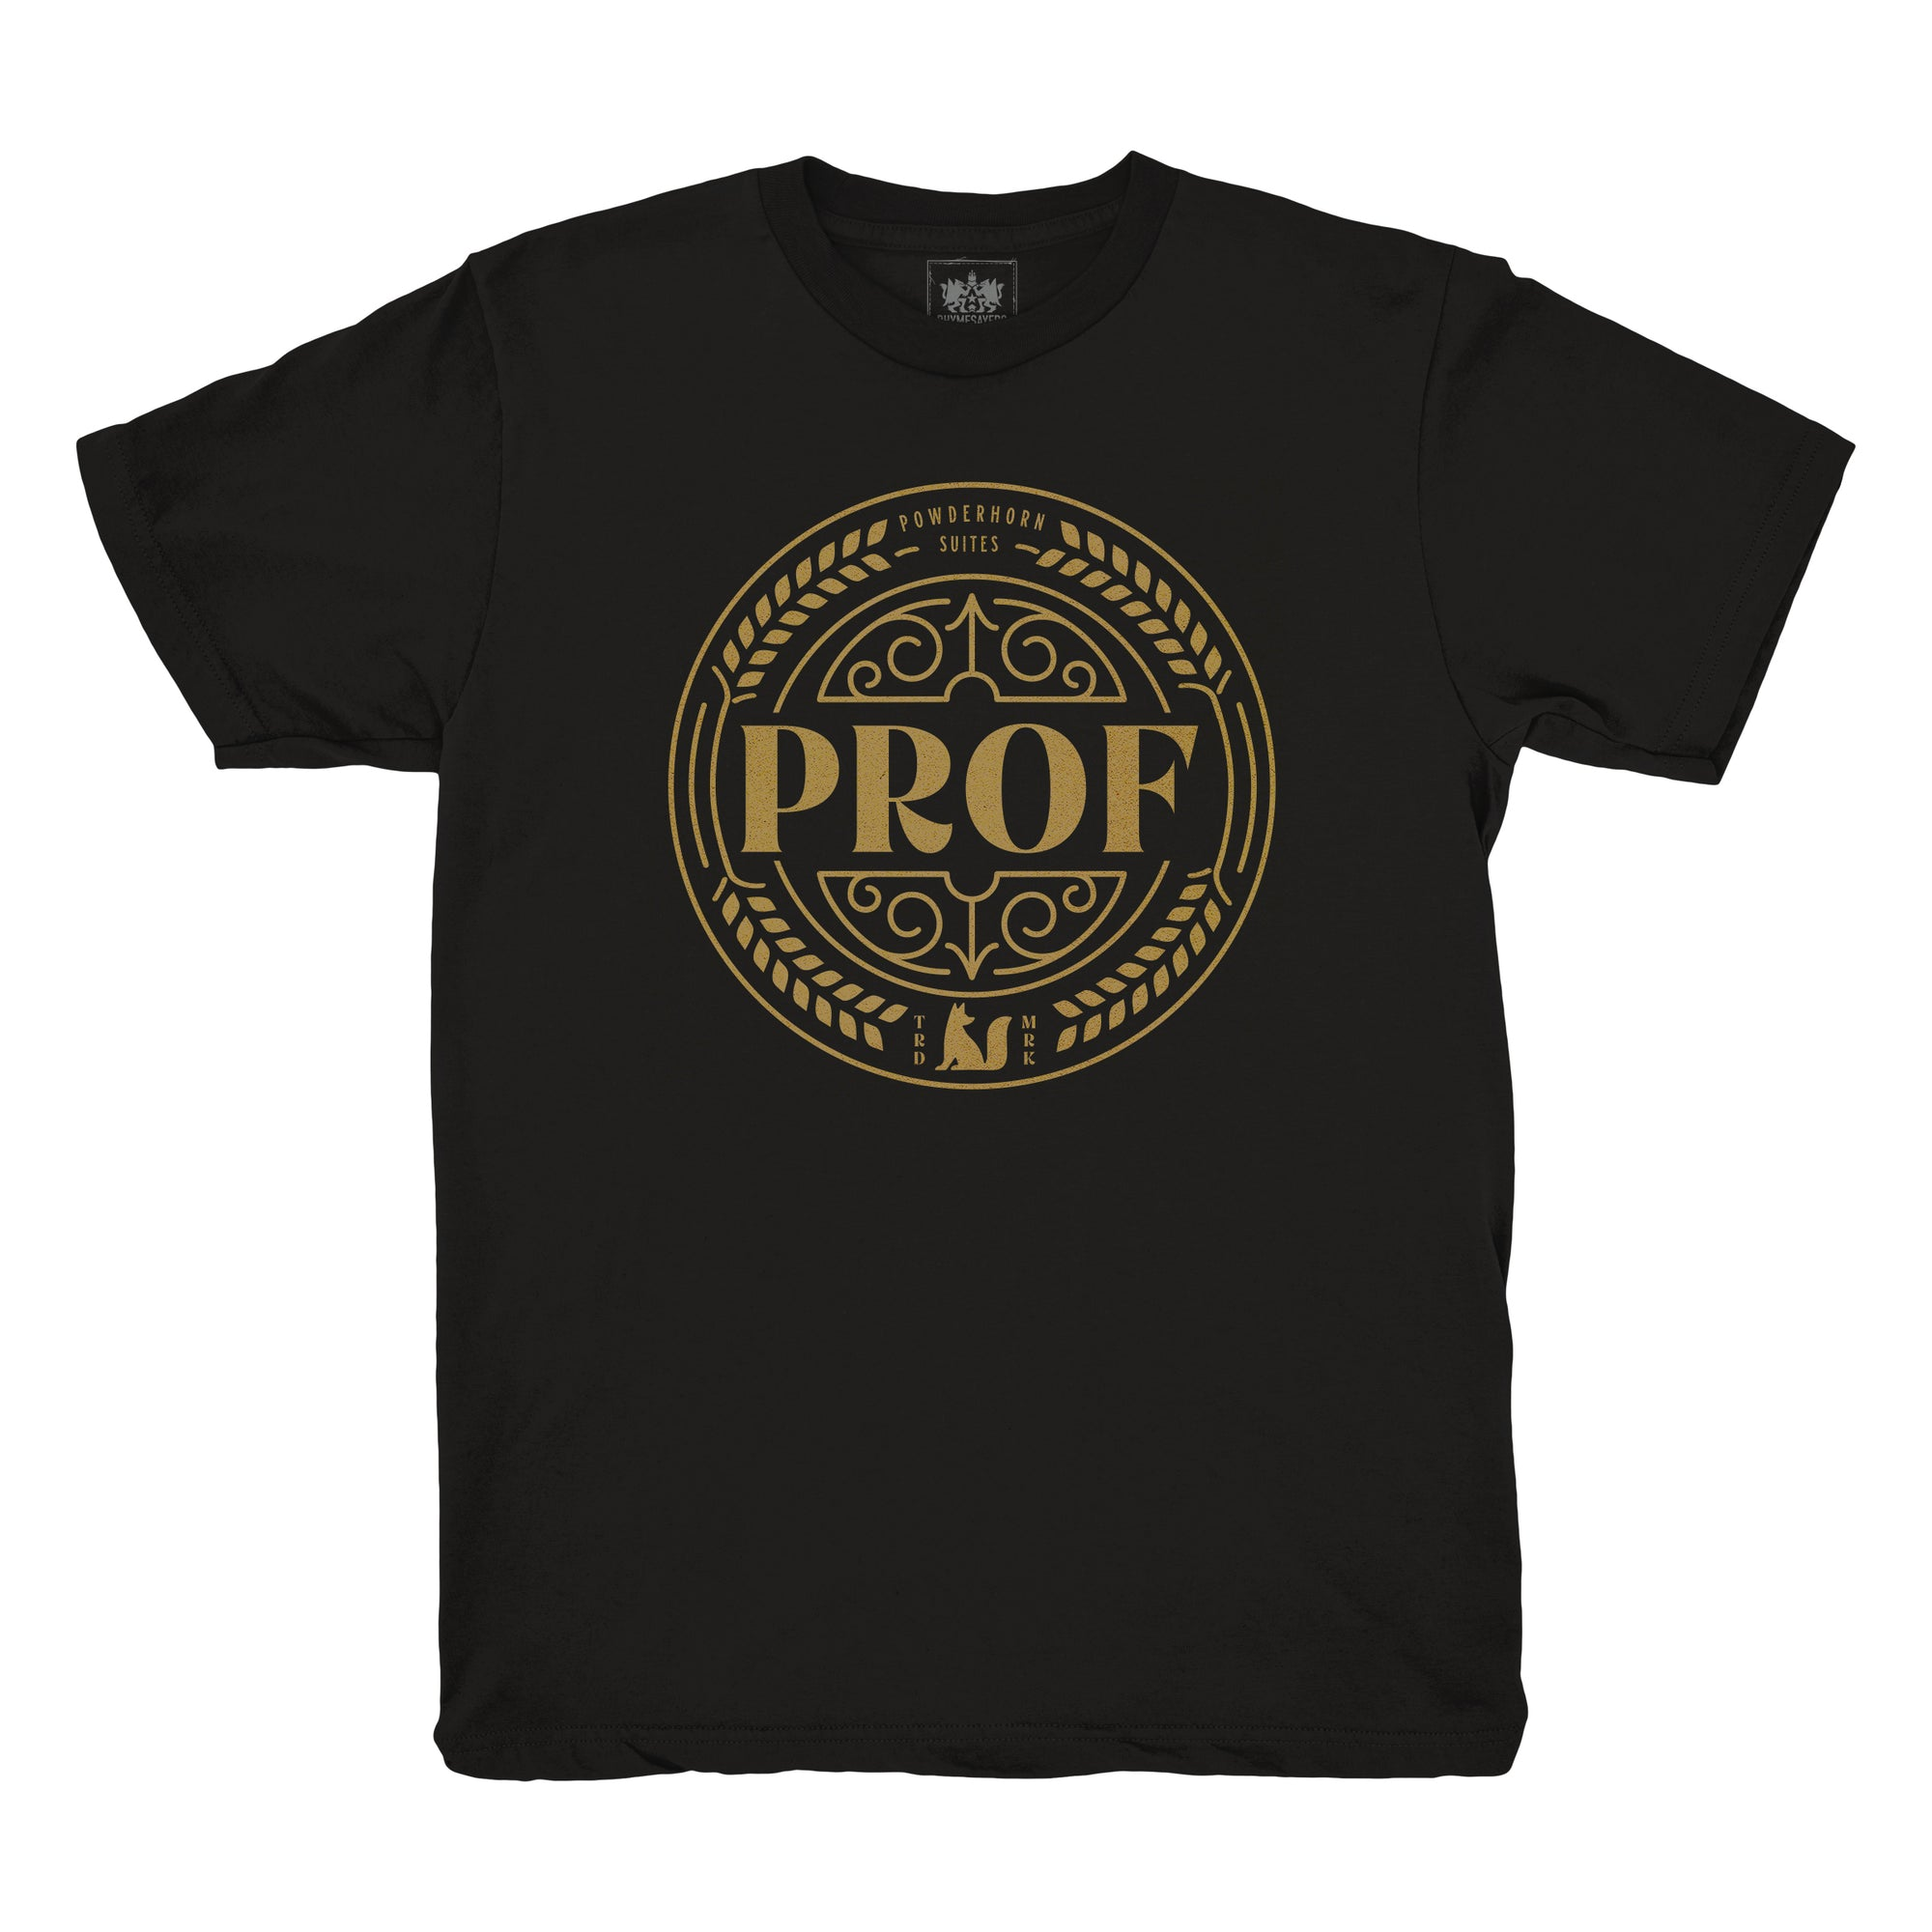 "Prof ""Powderhorn Suites"" Black Shirt [Pre-order]"